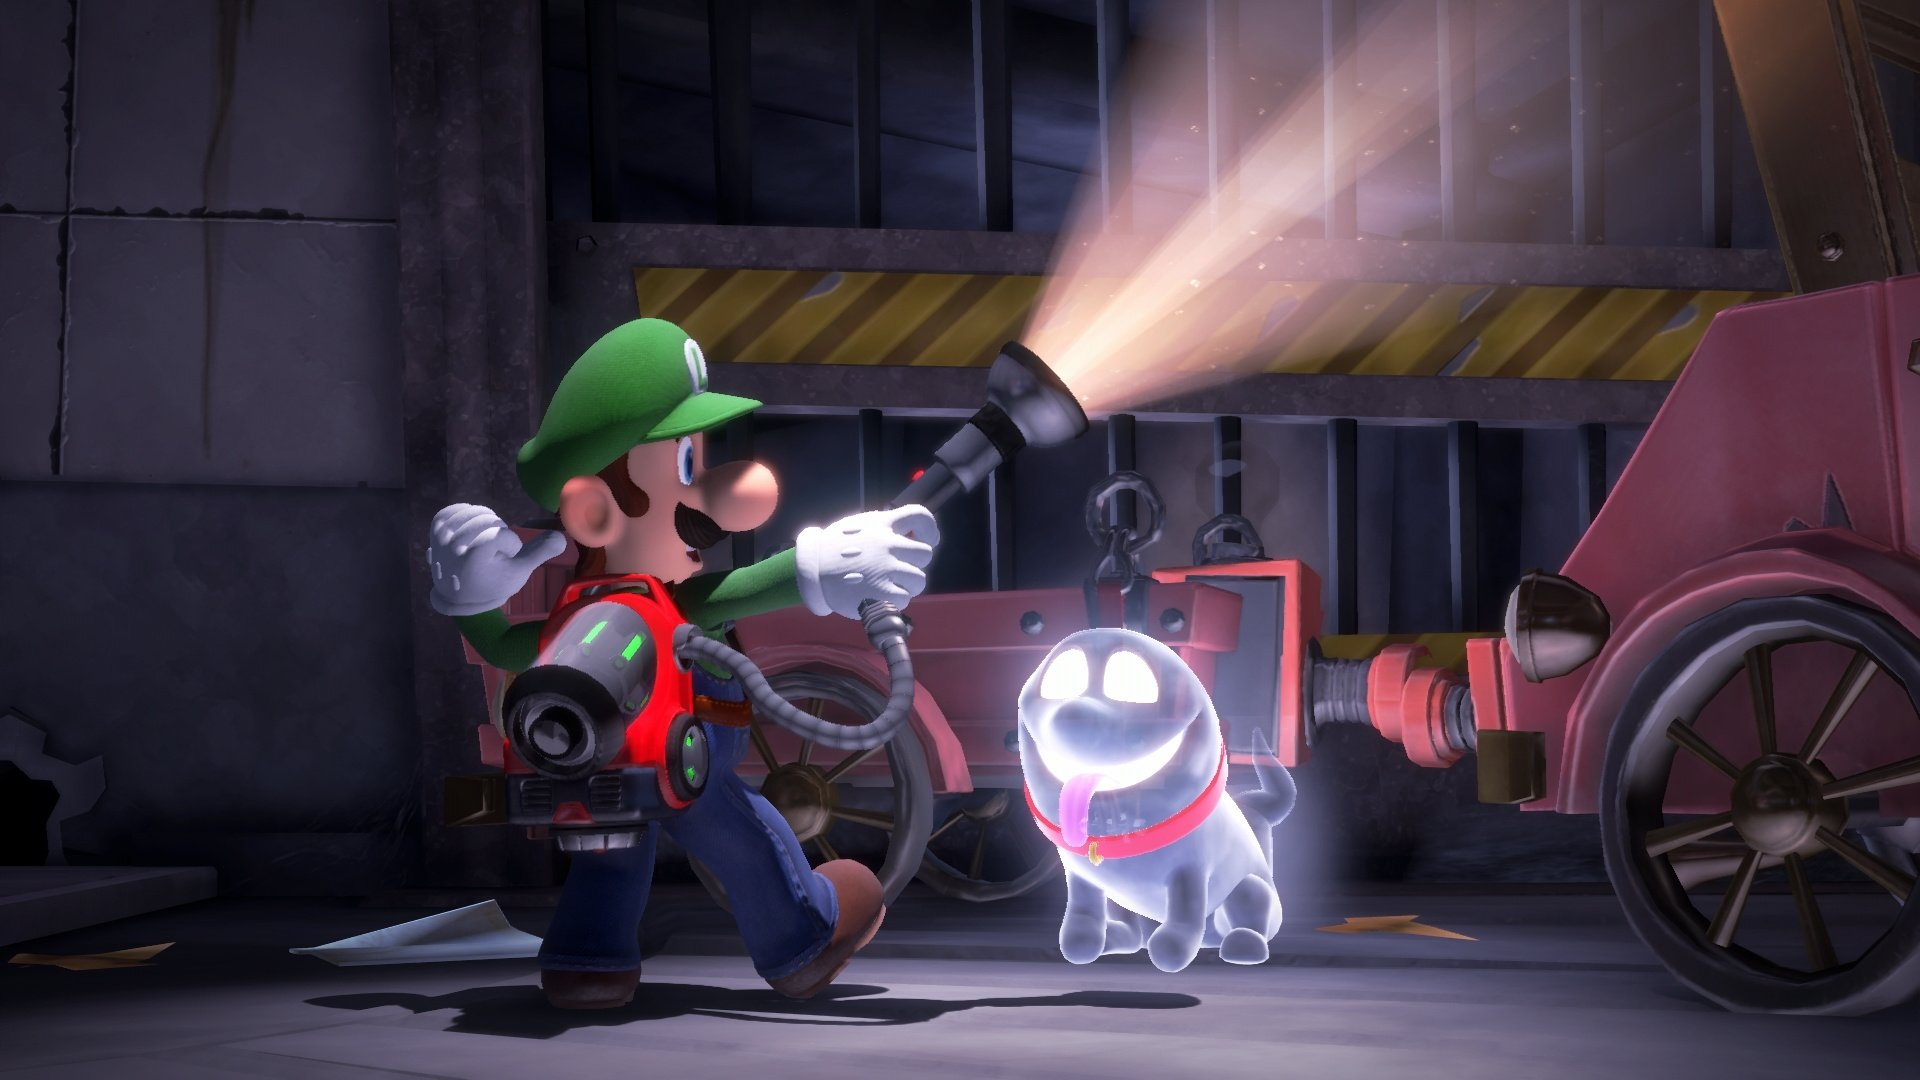 Luigi's Mansion 3 Sees The Green Plumber Take A Dream Vacation